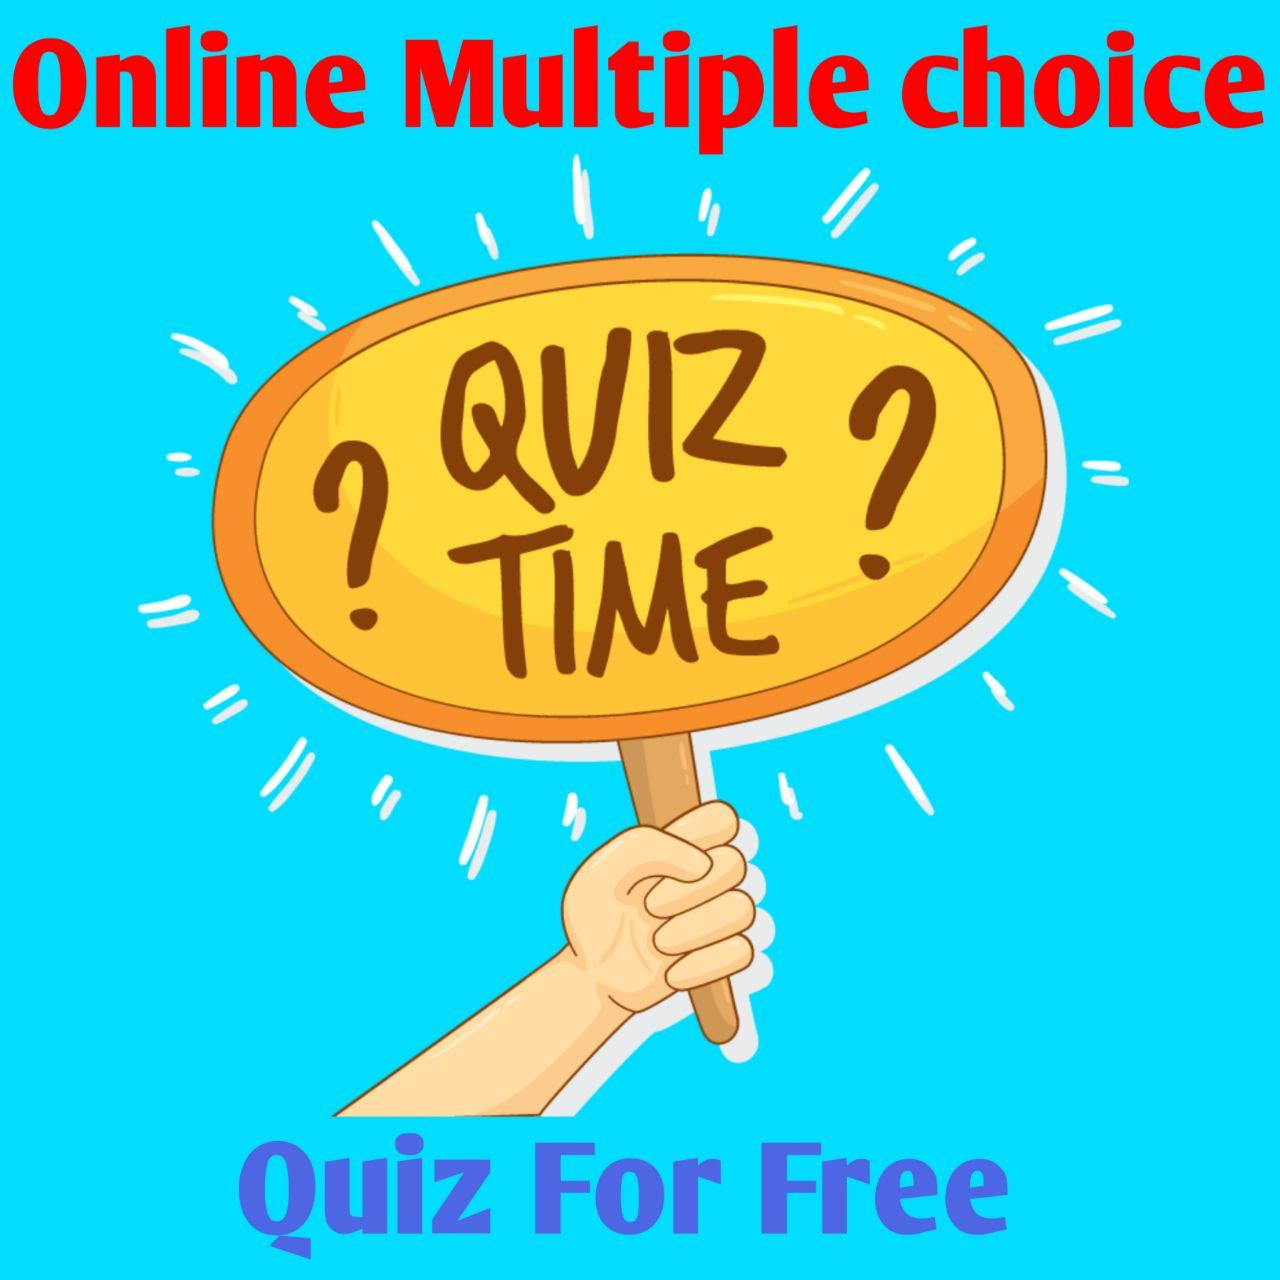 Online Multiple choice quiz game for free